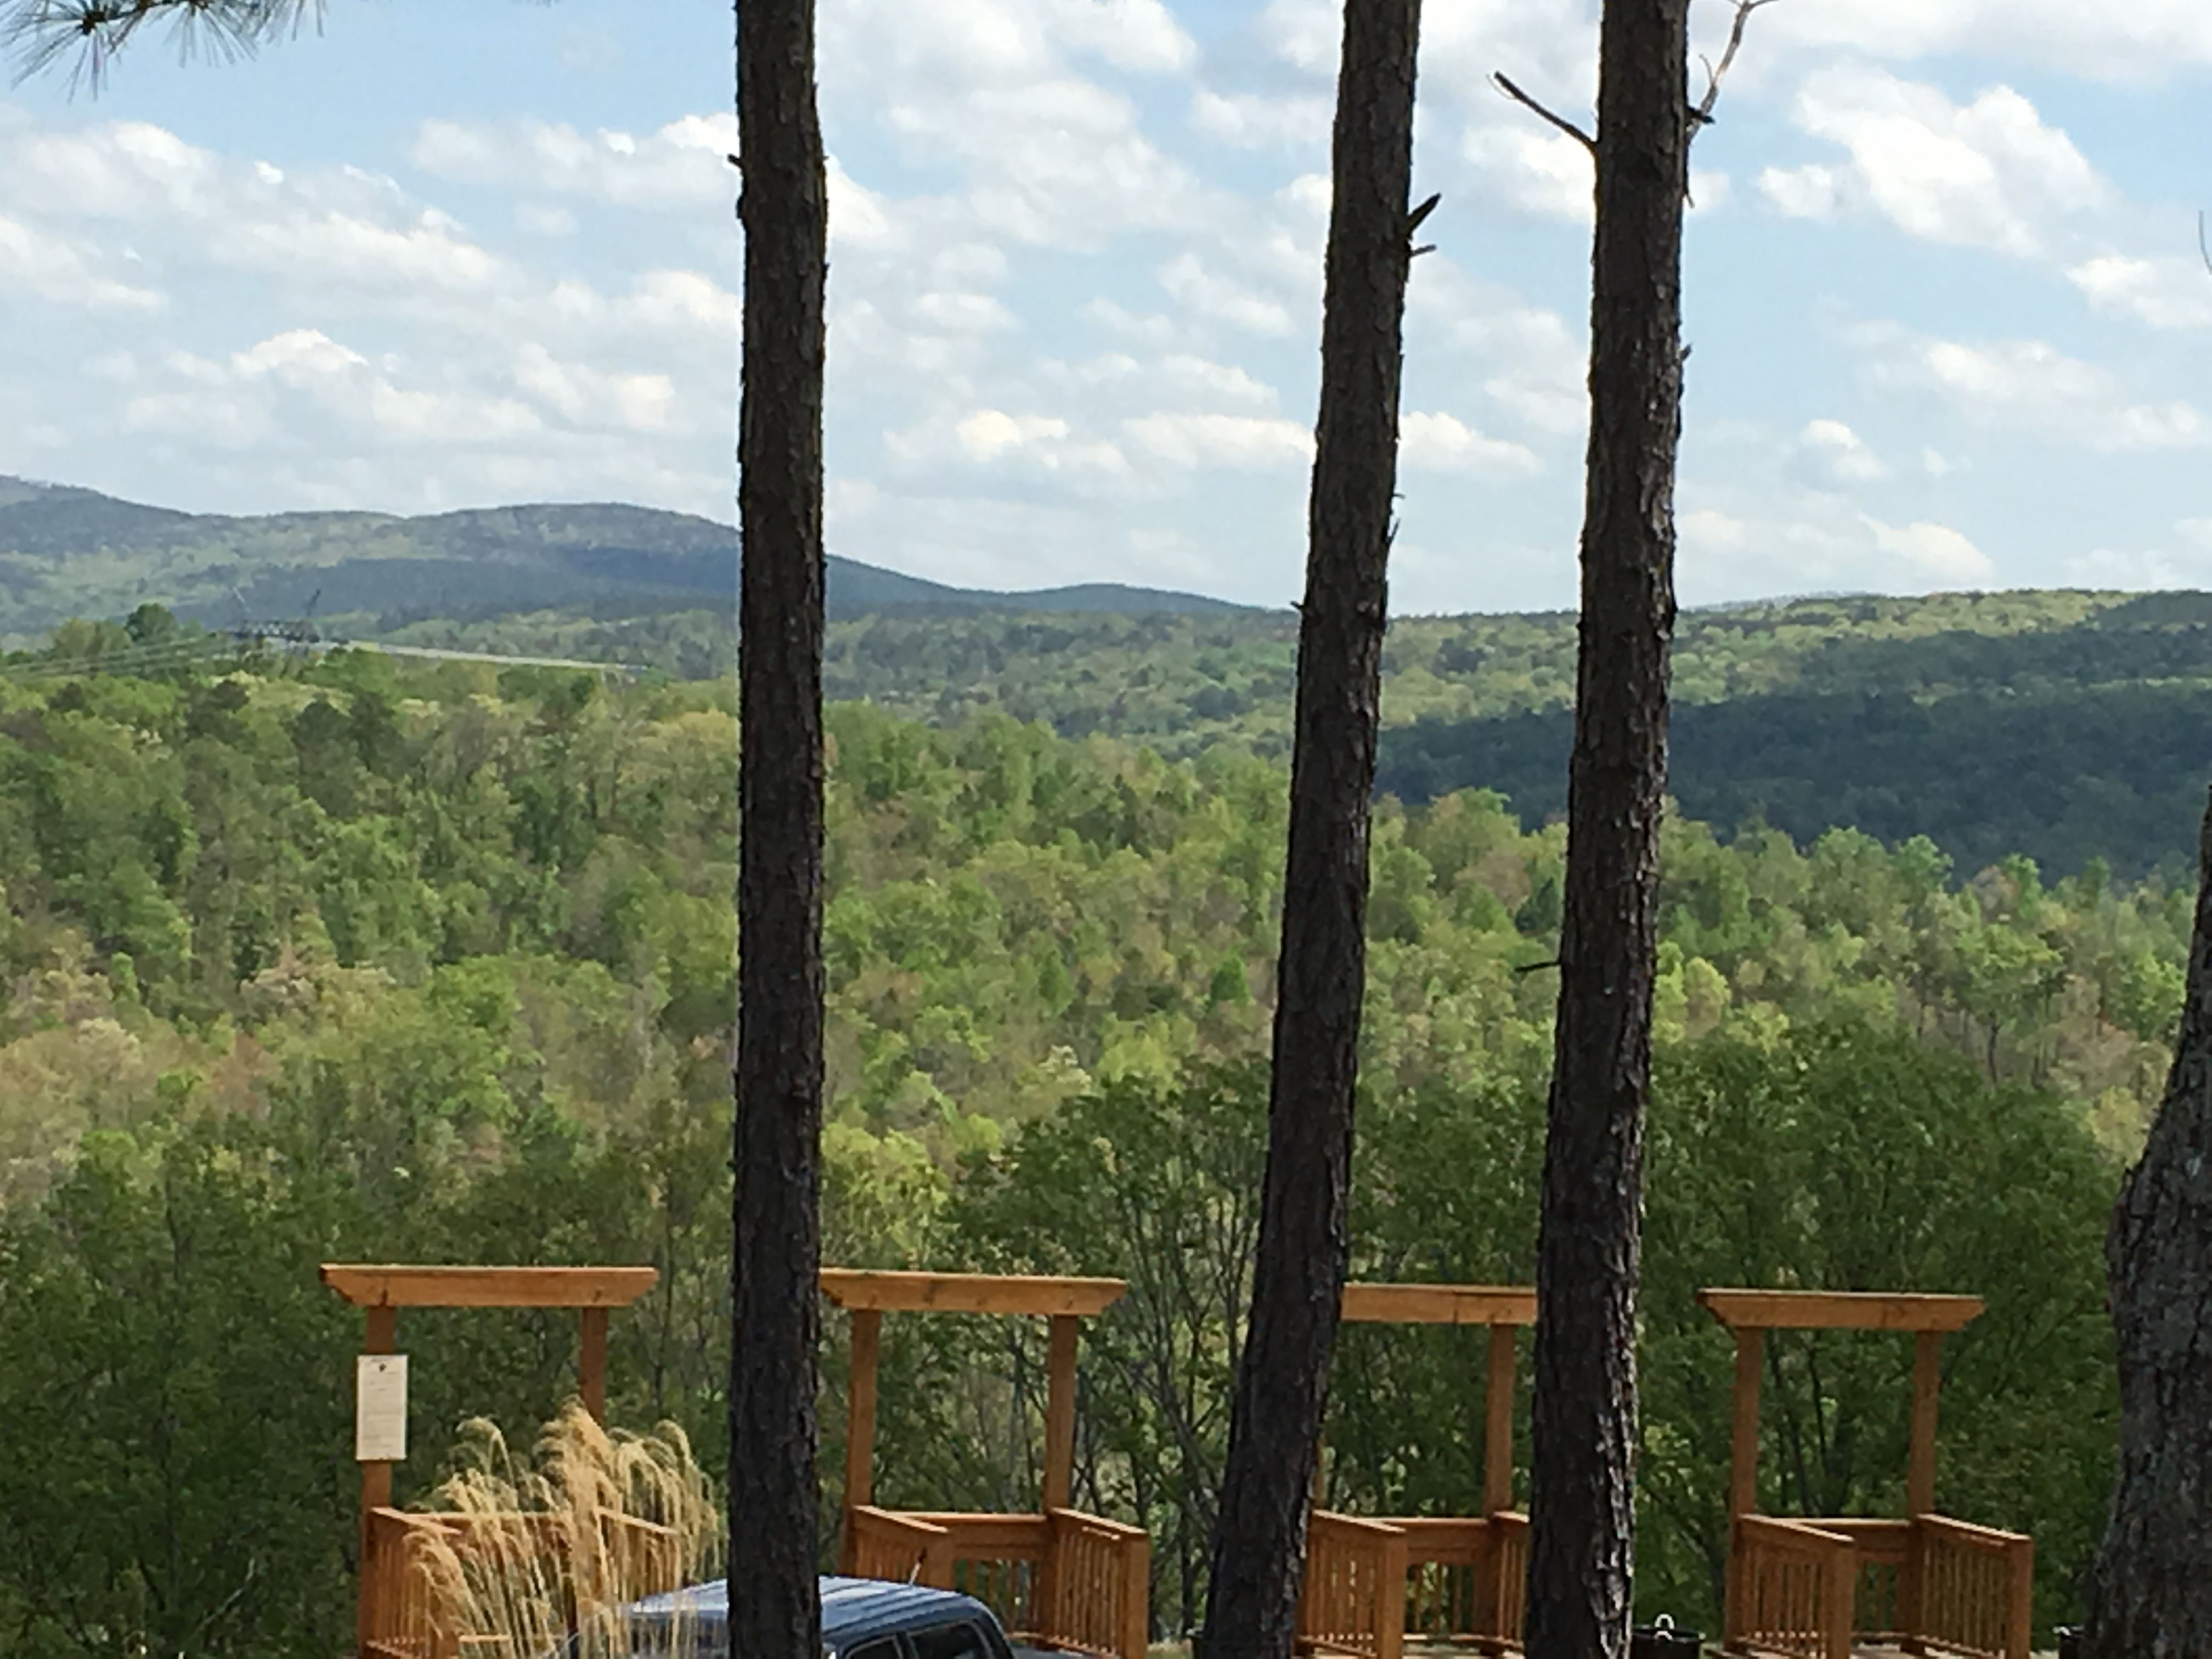 A peek at the five stand at Garland Mountain Sporting